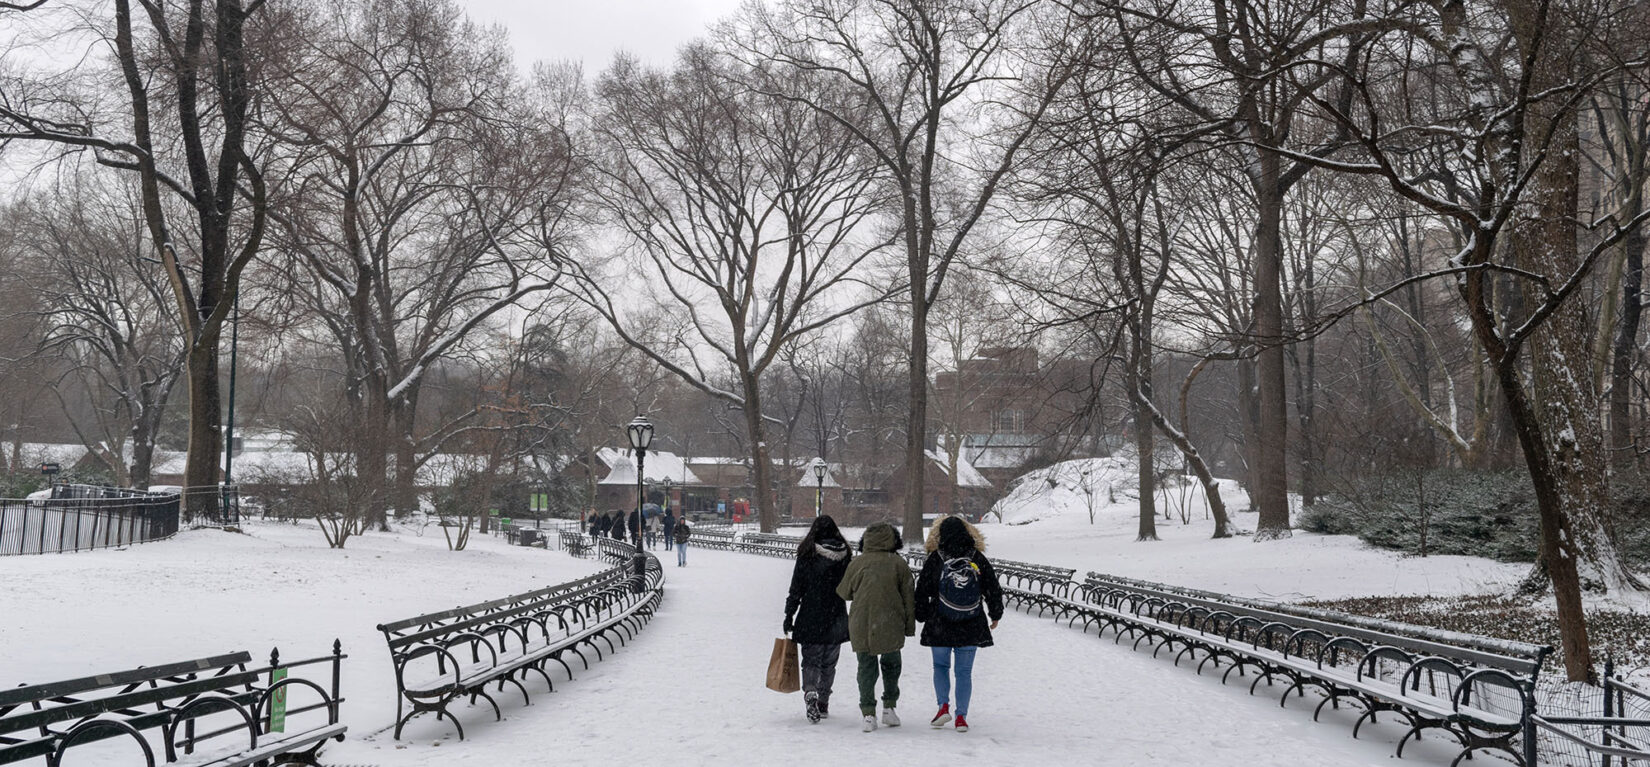 Ways to Enjoy Winter in Central Park